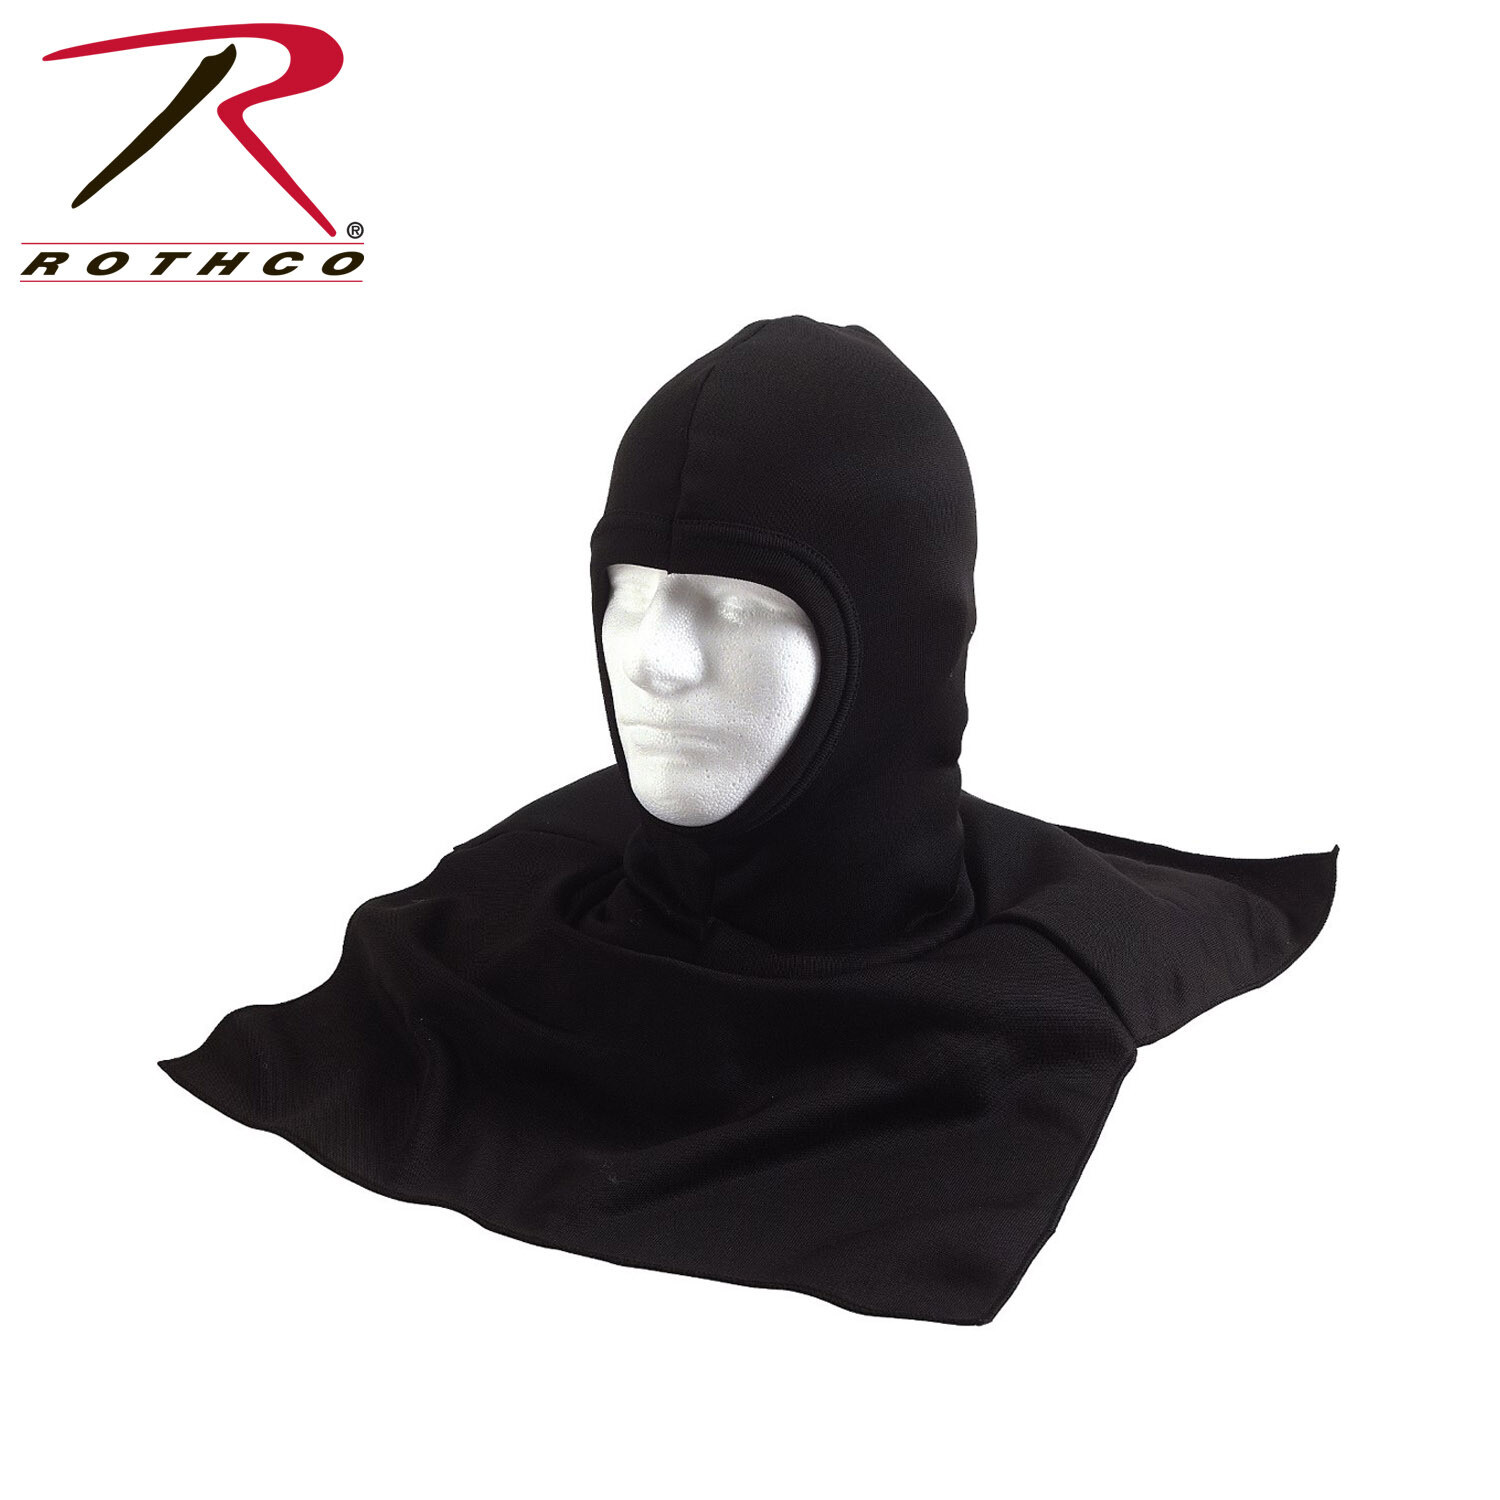 Rothco, 5522, Black Extended Cold Weather Poly Balaclavas w/Dickie